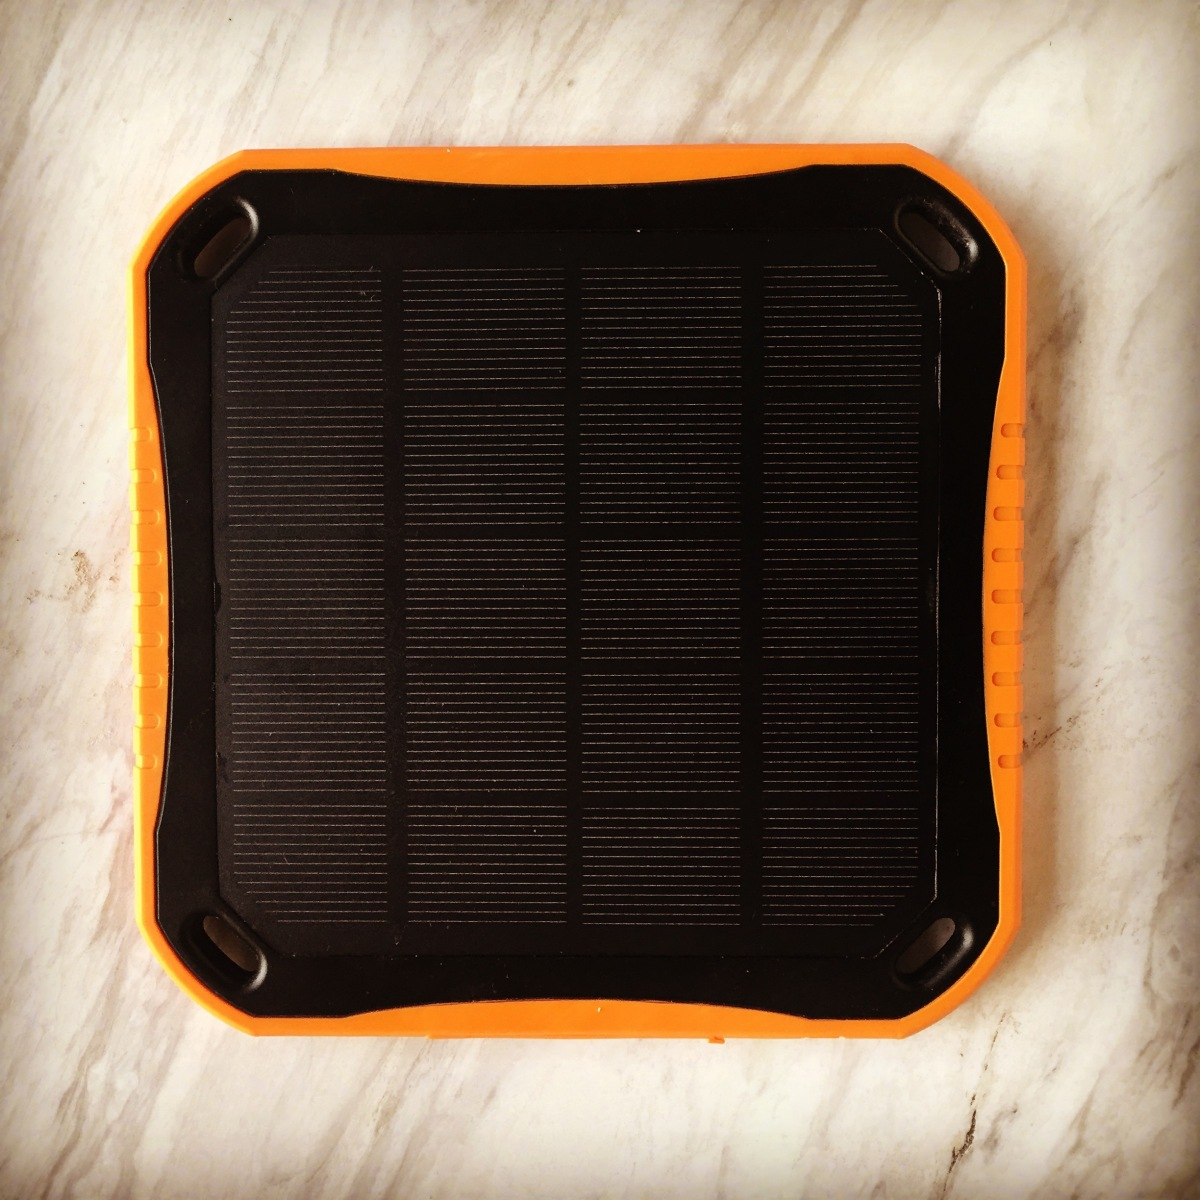 Sungzu Solar Charger Review